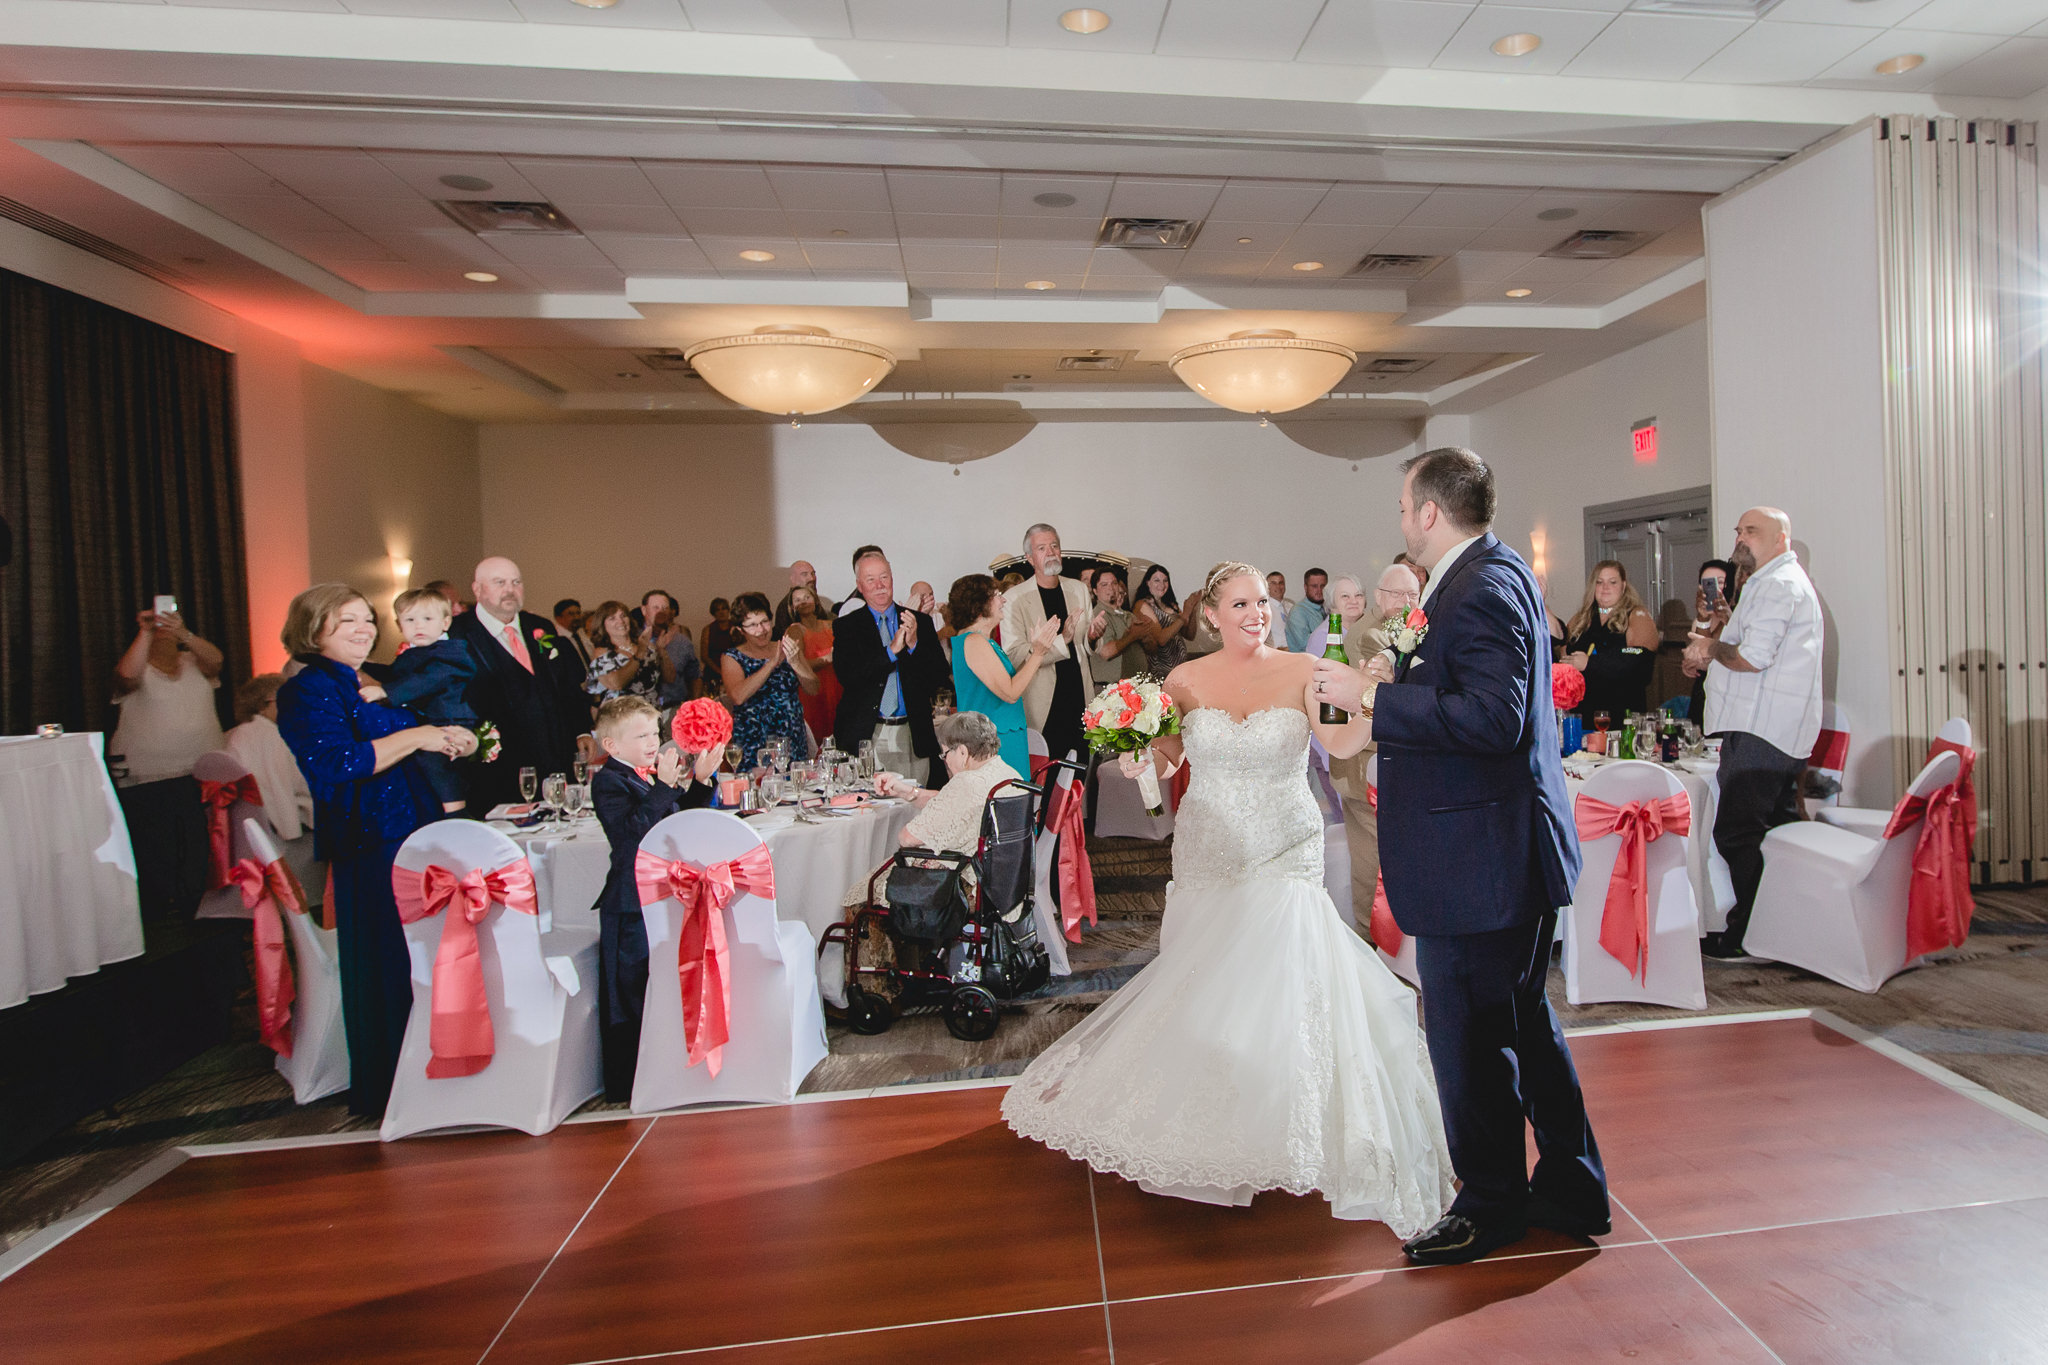 Newlyweds are announced into their reception at the Pittsburgh Airport Marriott